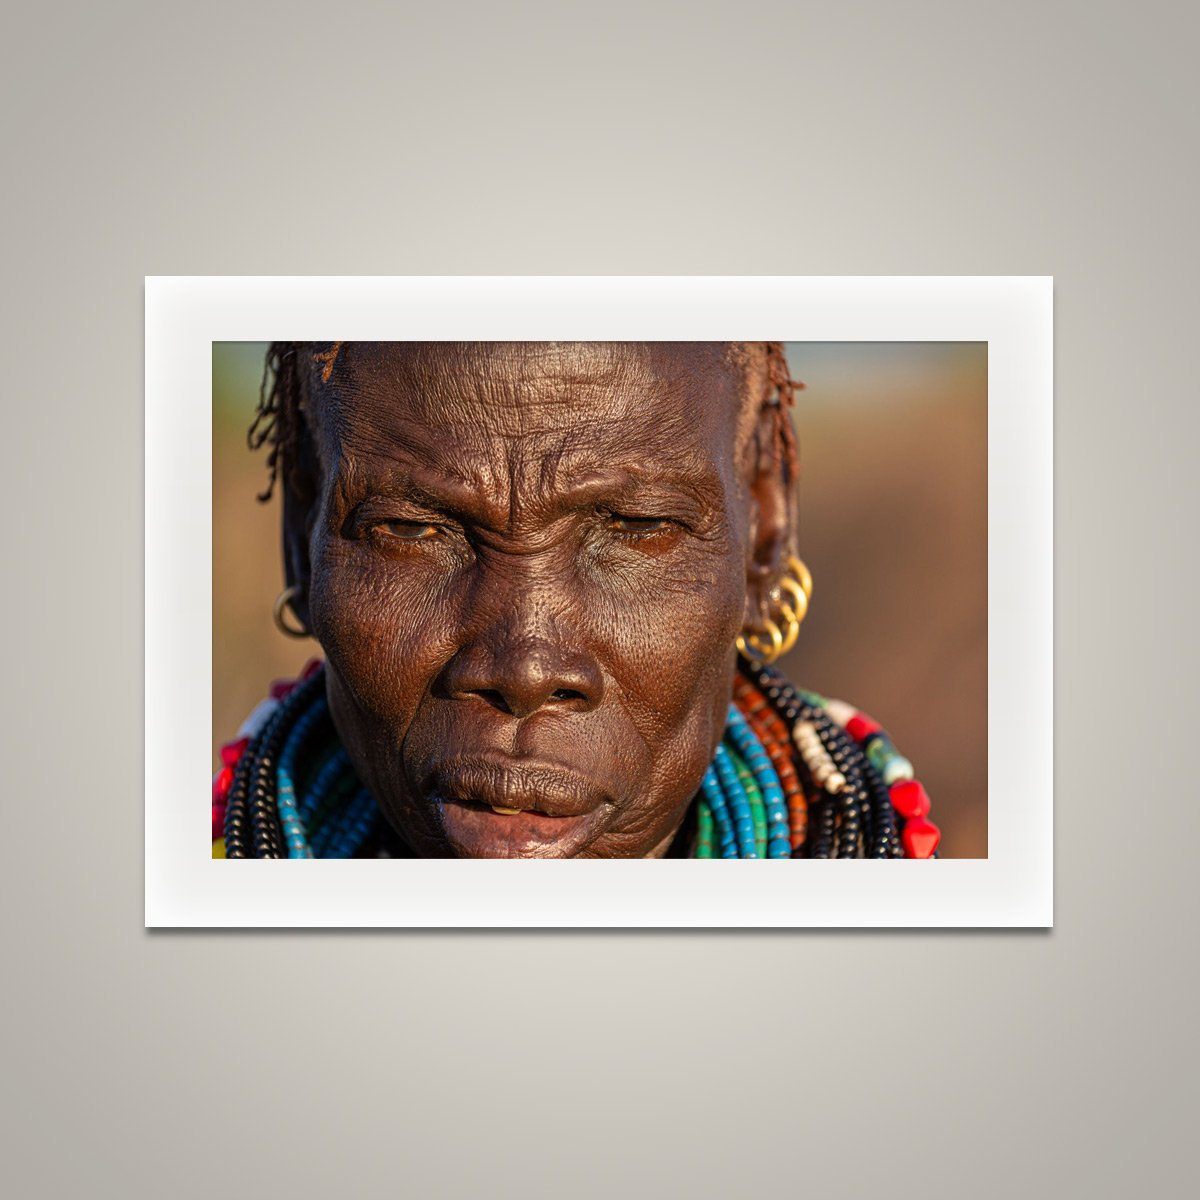 Strength - Omo Valley